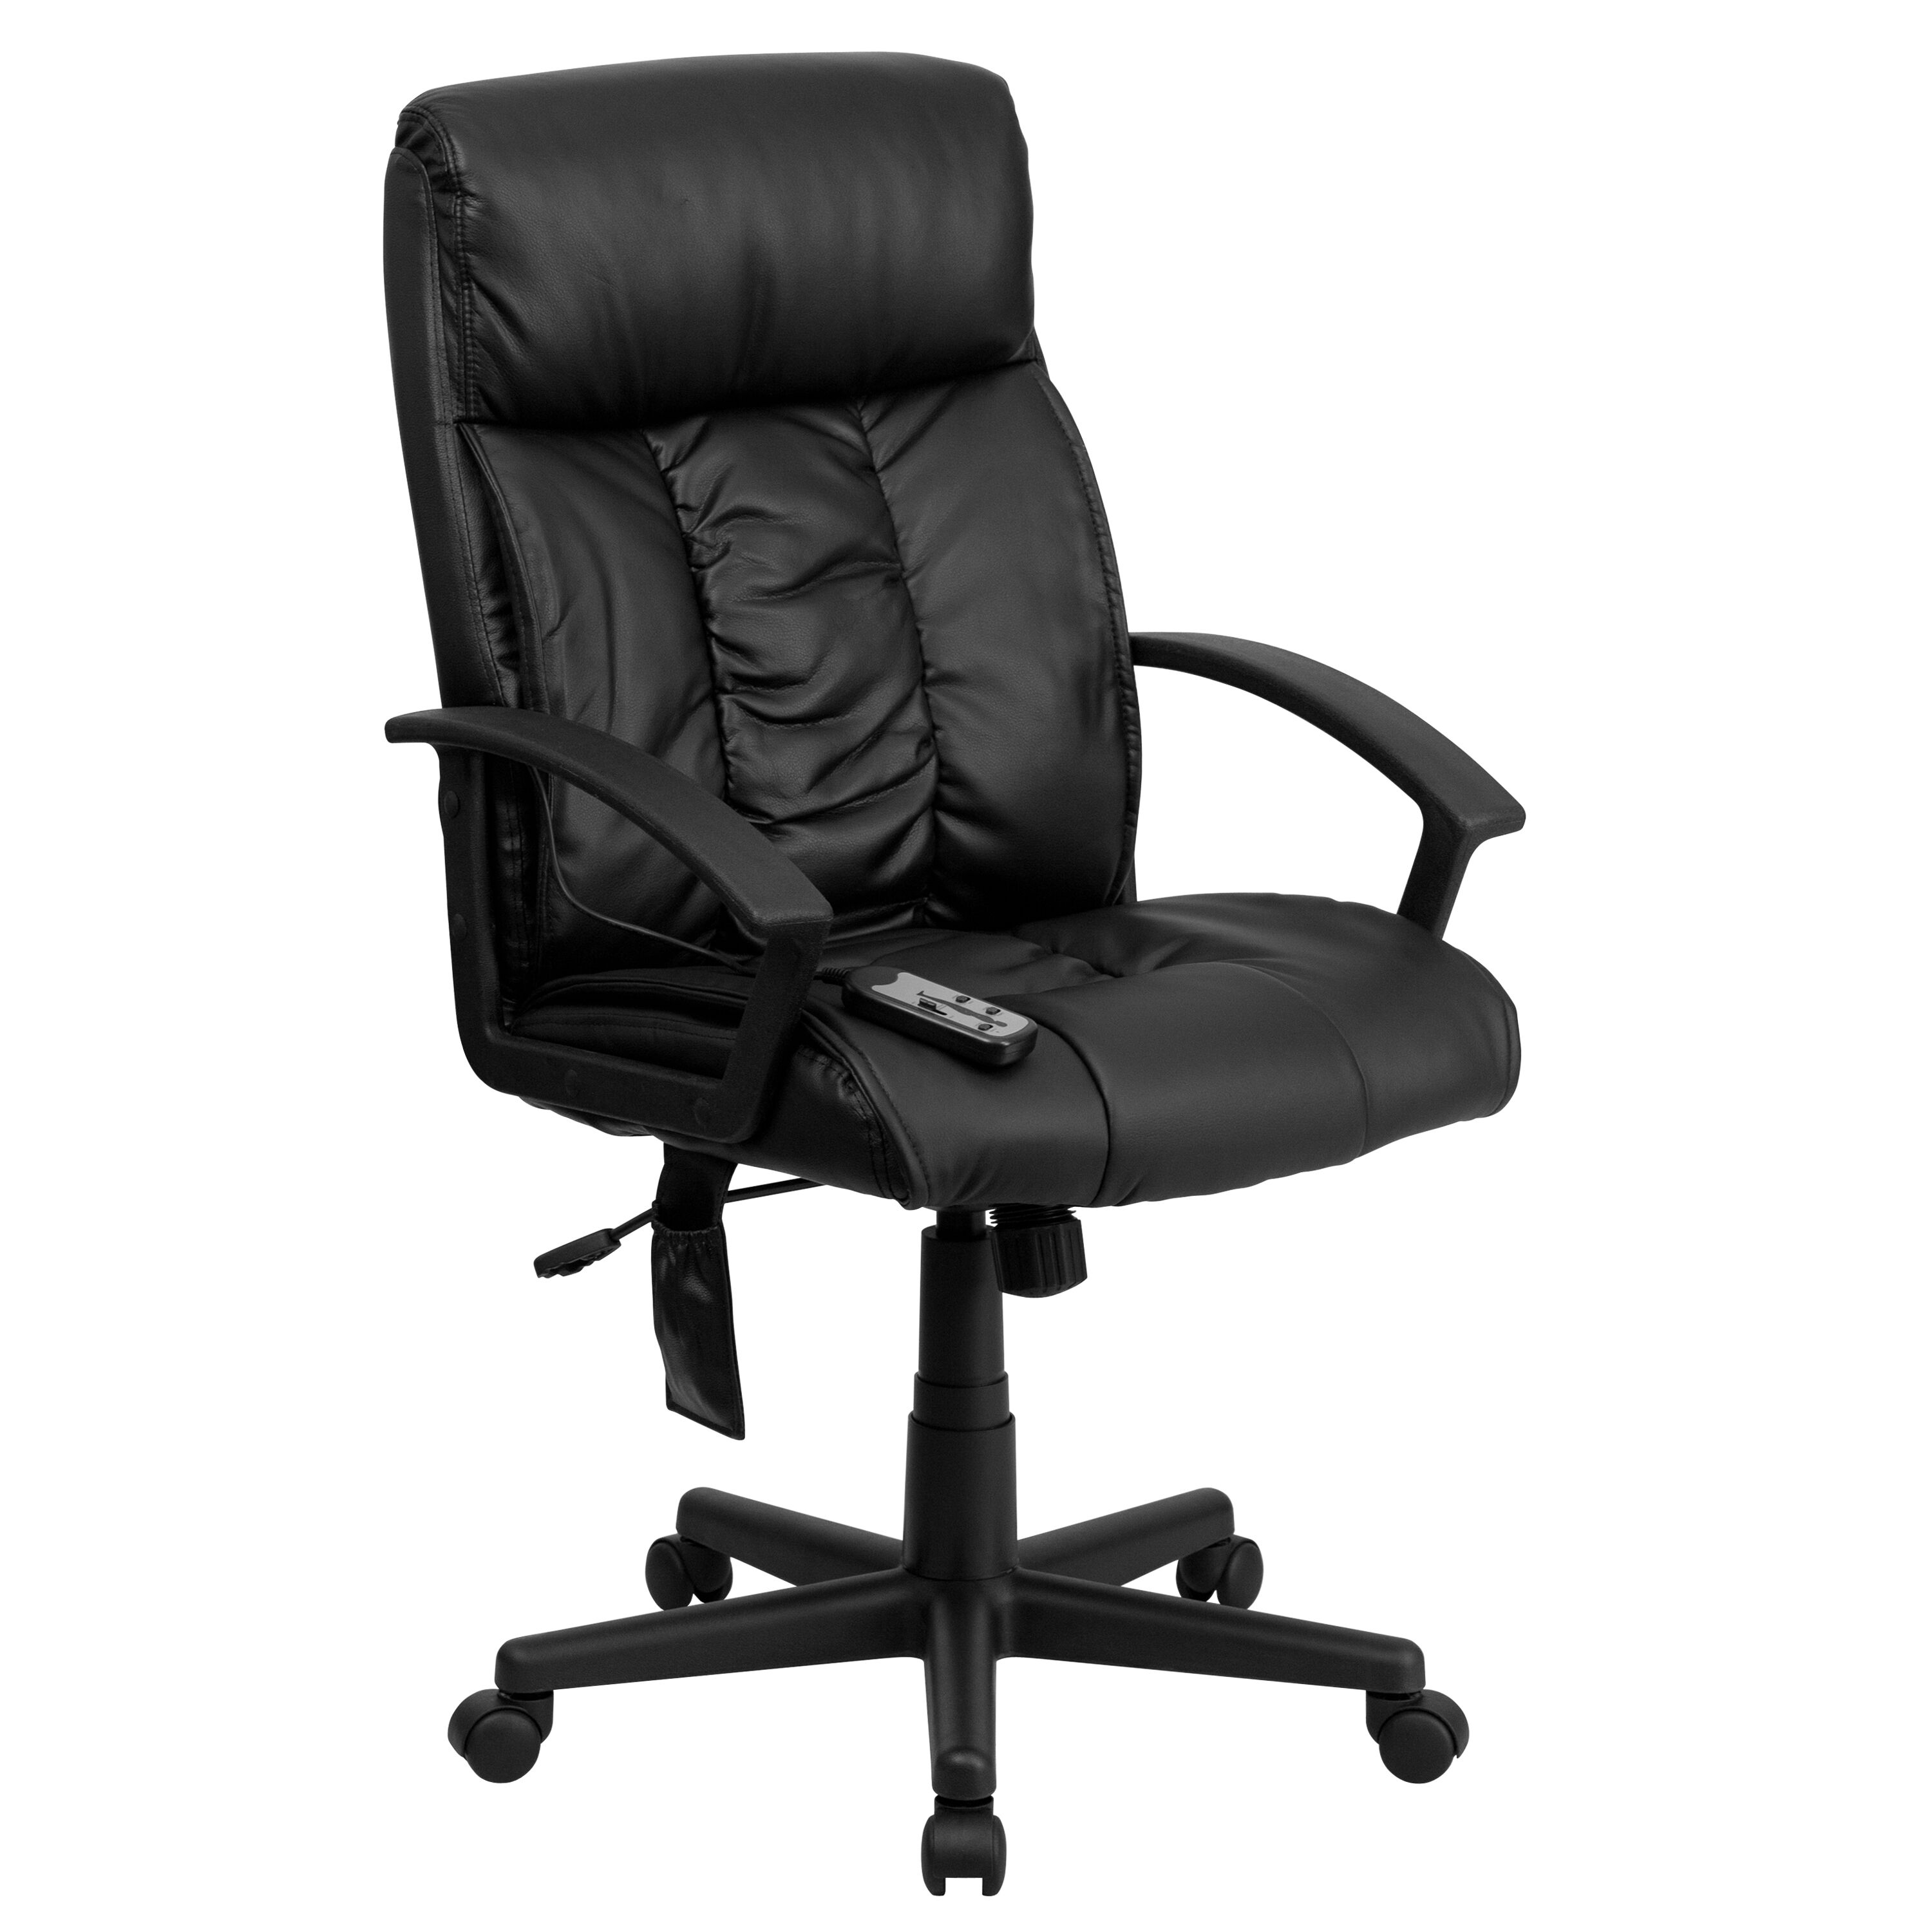 back massage chairs for sale swing chair shop in chennai black high bt 9578p gg restaurantfurniture4less com our ergonomic massaging leather executive swivel office with side remote pocket and